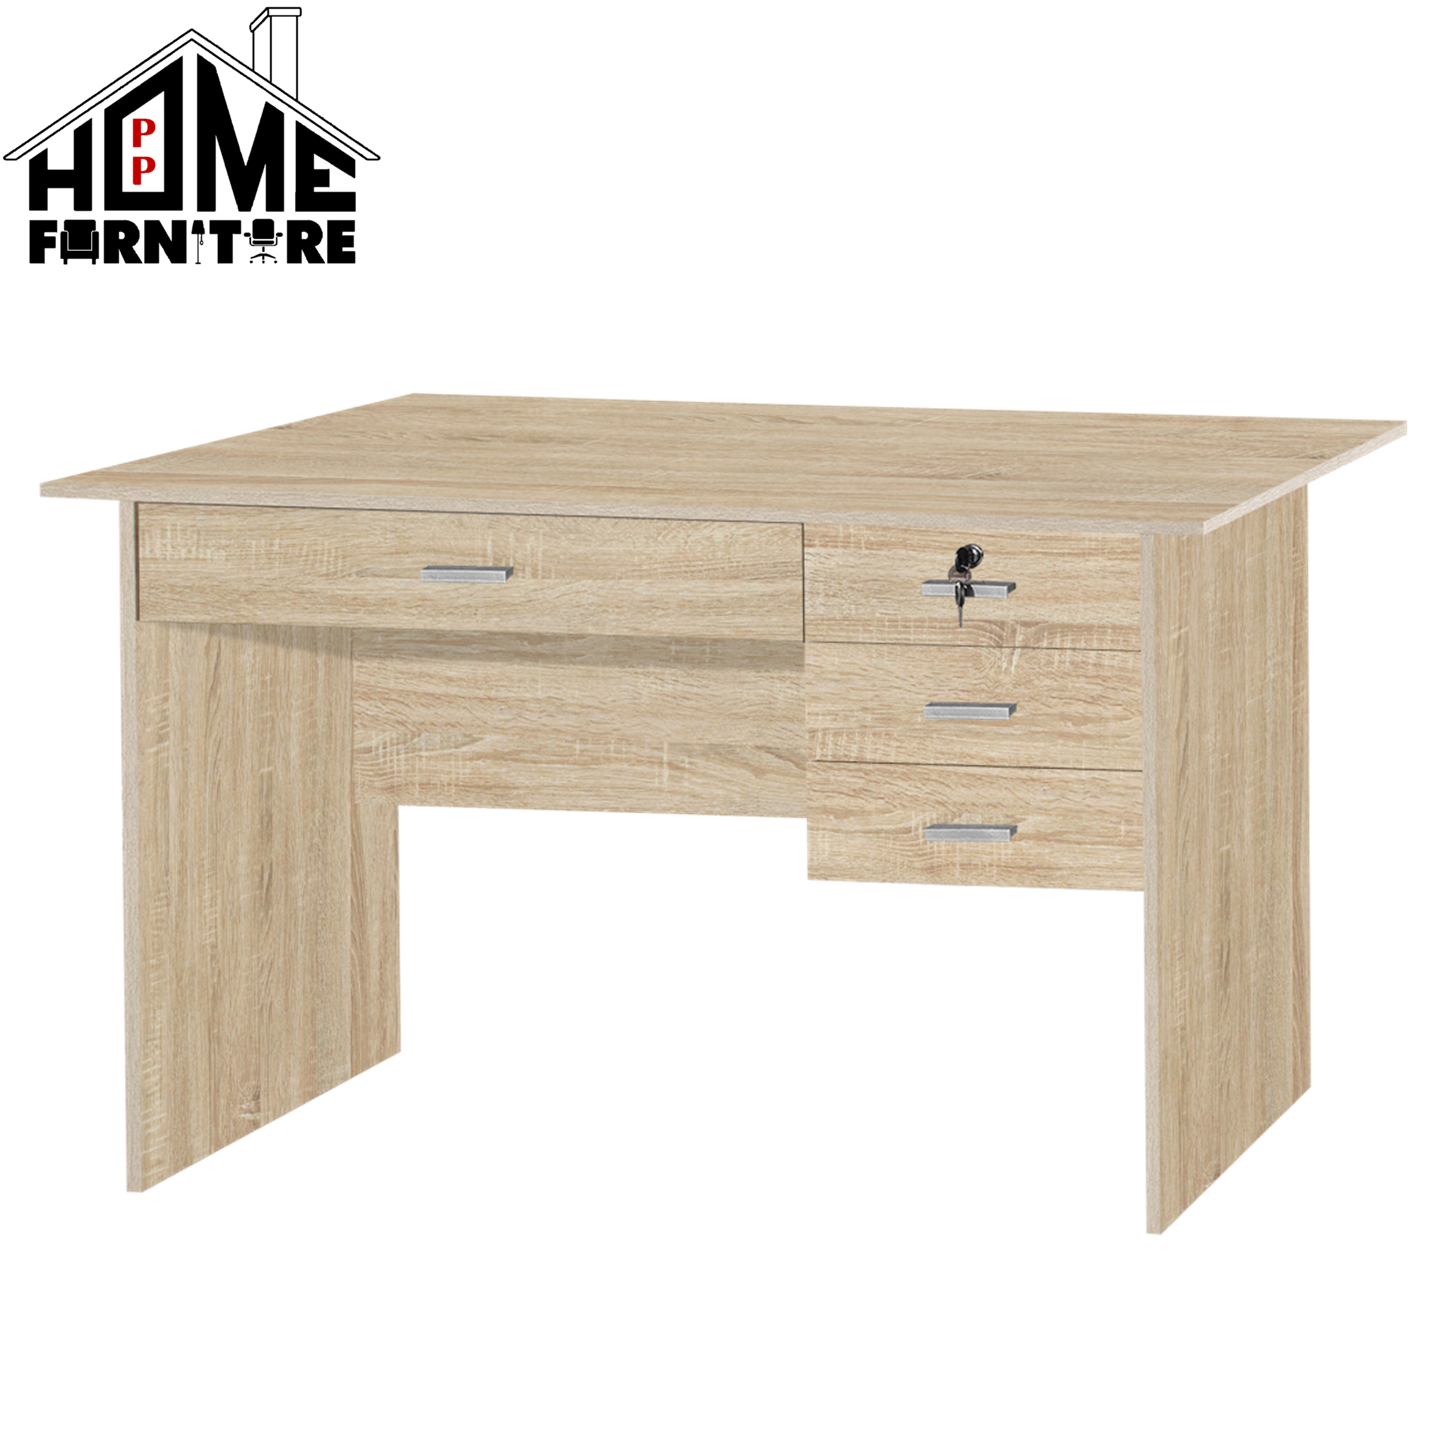 PP HOME Study Table with drawer locker/Writing table/Working table /PC table/ Student table/Home office table/Multipurpose table/Desk/Computer table/Destop/laptop/Meja belajar/Meja tulis/Meja kerja/komputer电脑桌/书桌/工作桌/读书桌/办公桌WT2424